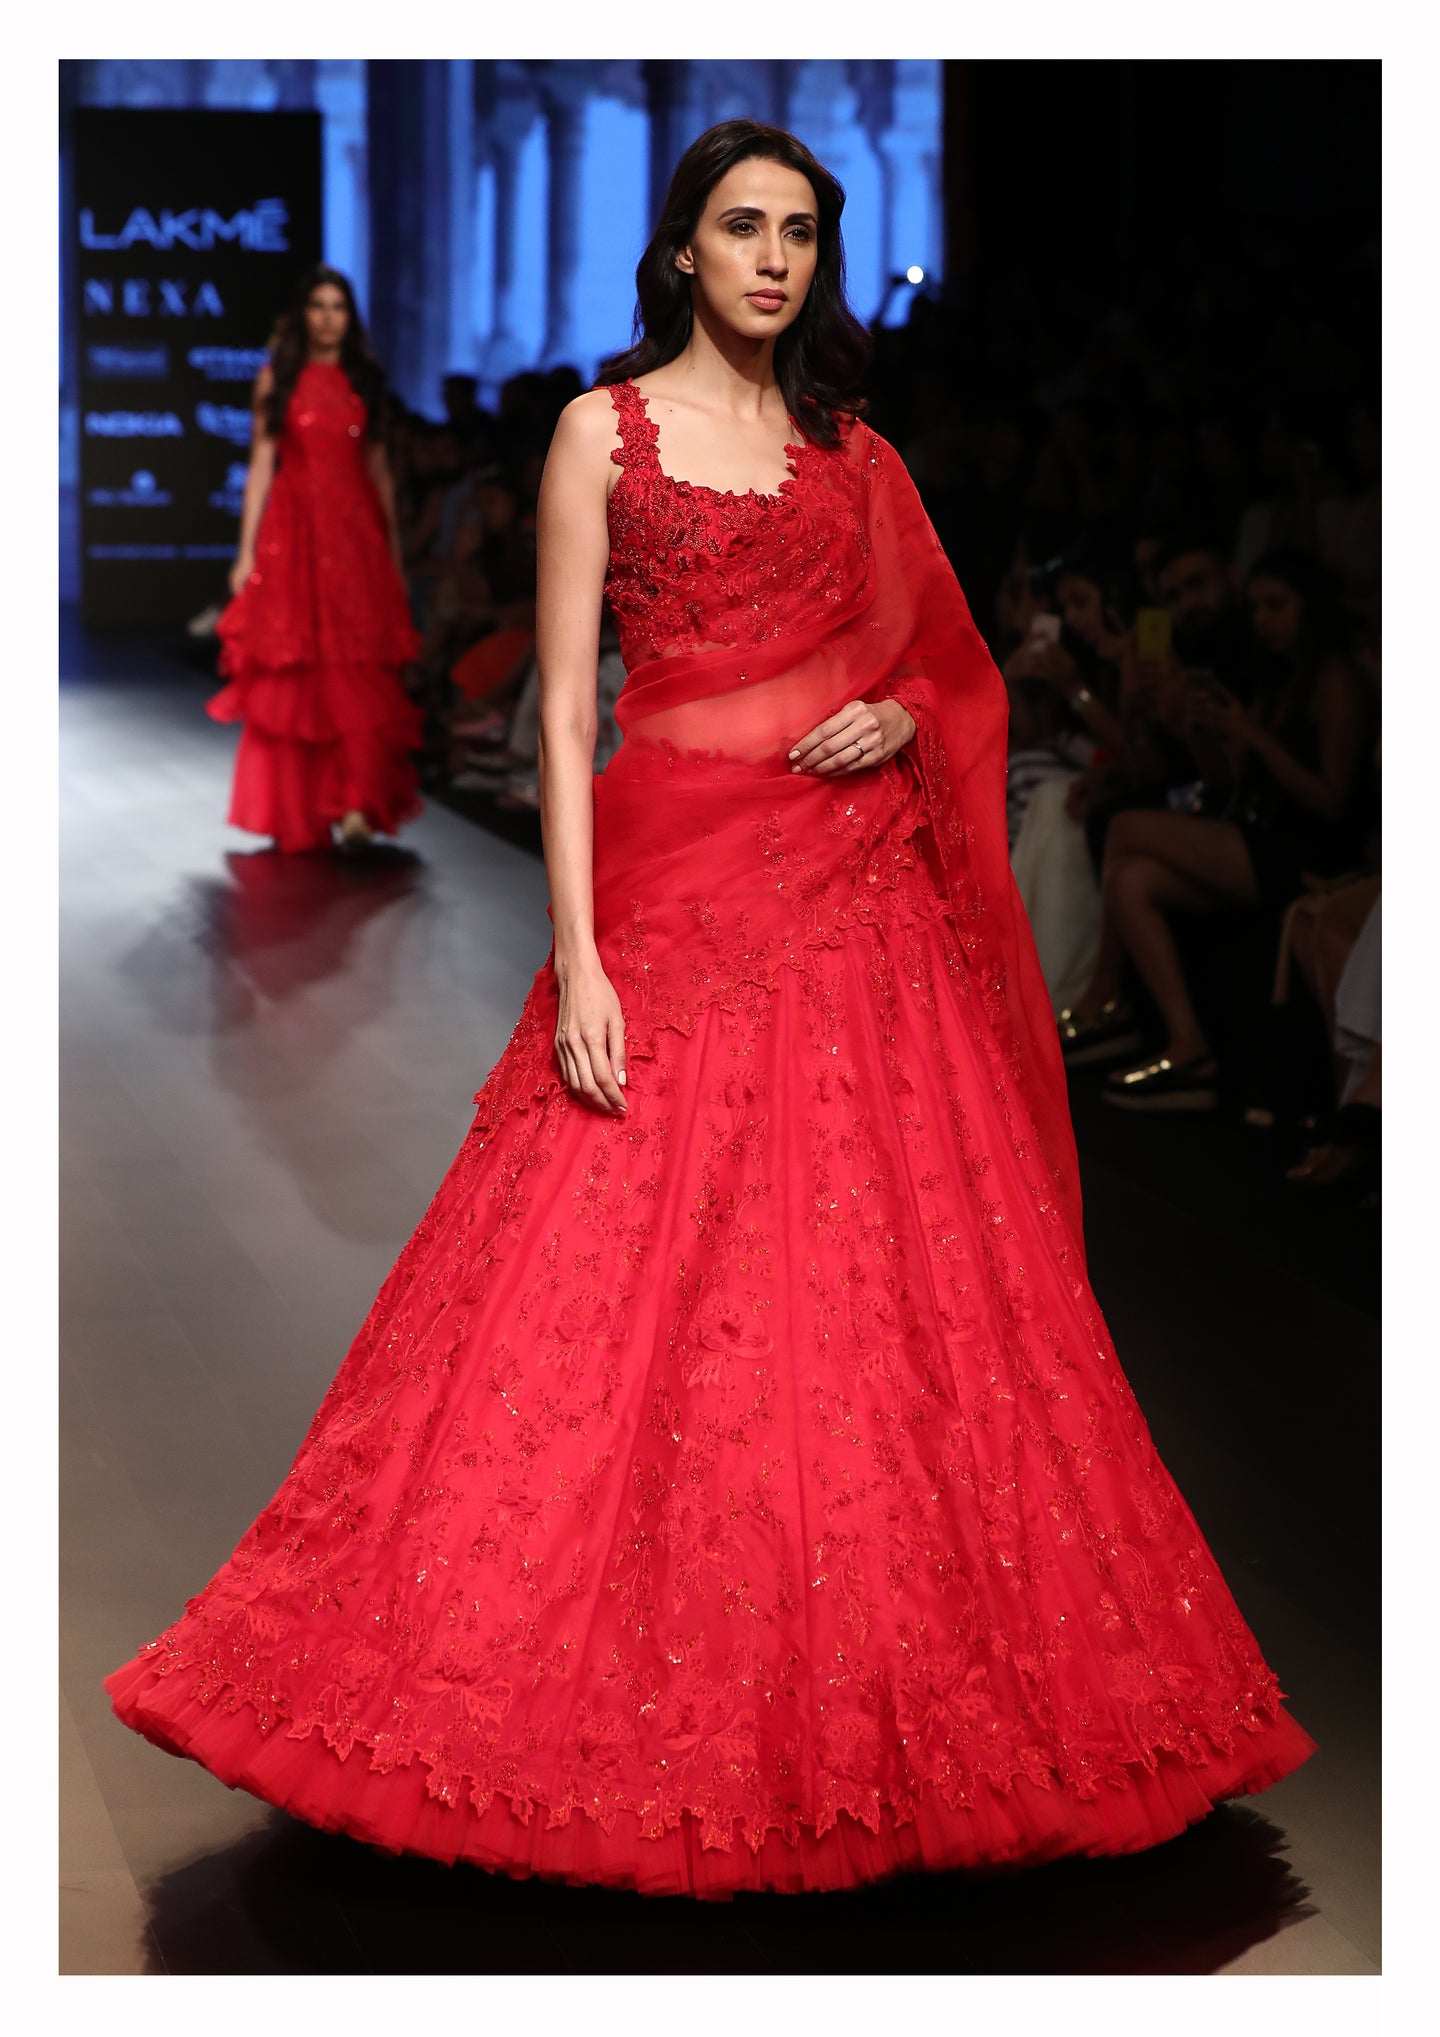 Royal Red Sequin embroidered Lehenga with Sleeveless Blouse and Dupatta - The Grand Trunk